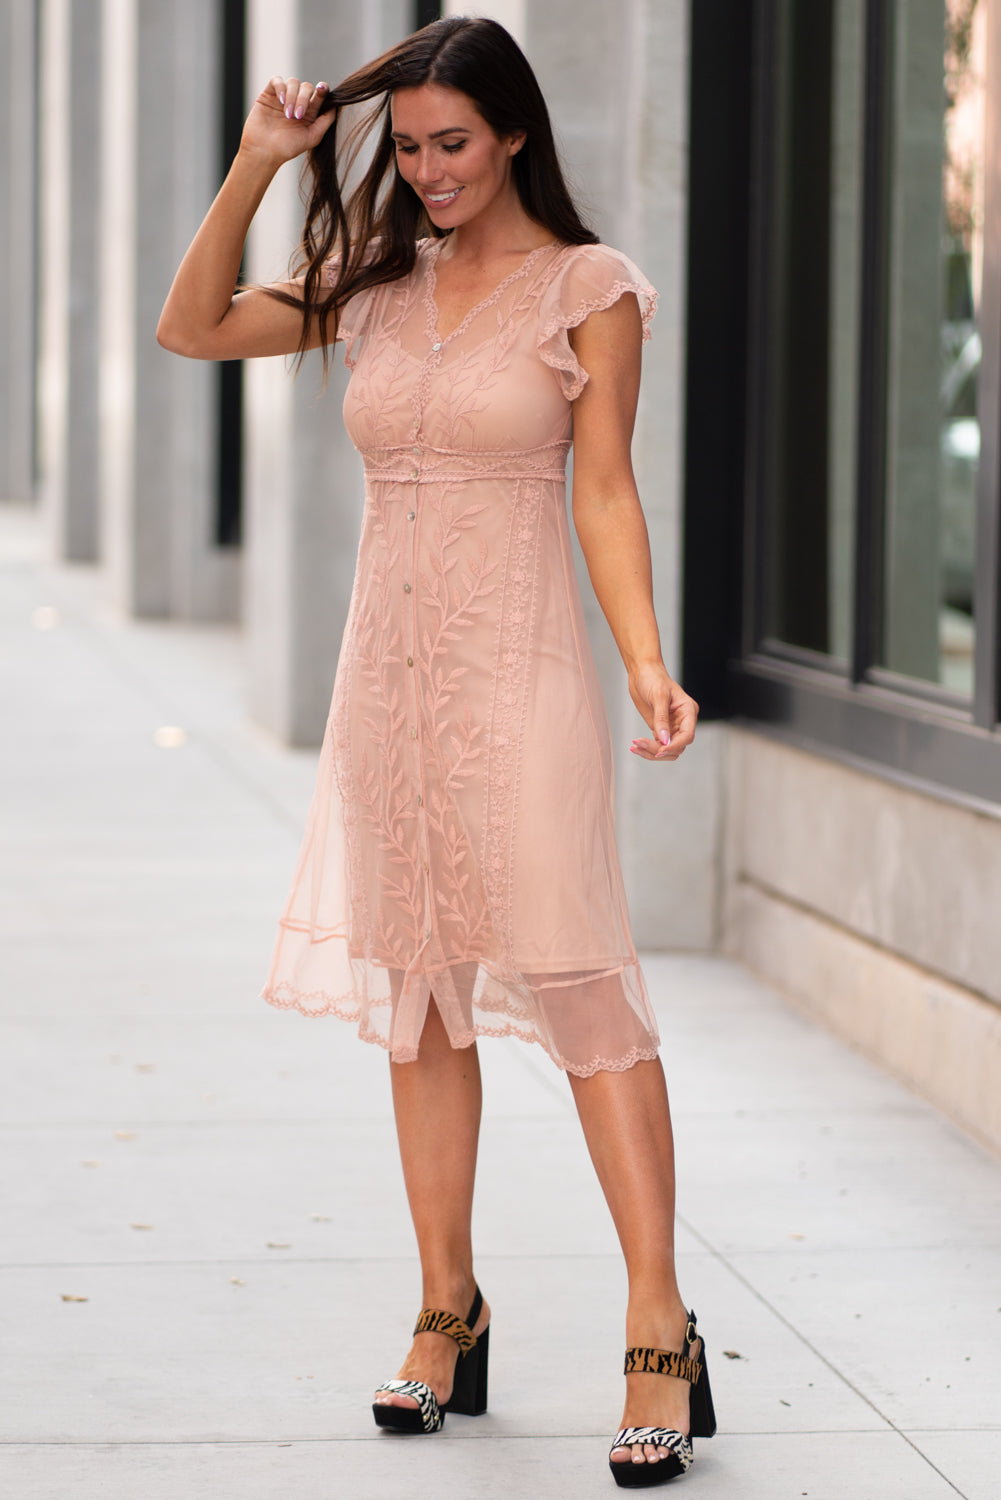 Miss Me  Collection: Fall 2020 Lace Two Piece Dress Color: Blush Pink Cut: Midi Button Down Self: 80% Cotton, 20% Polyester; Lining: 100% Polyester Style #: MD0294S-BLUSH Dream in style with this sweet dress featuring an all over sheer lace fabric, button down closures at front, inside slip, short flutter sleeves, a v-neck line and a midi cut.  Contact us for any additional measurements or sizing.